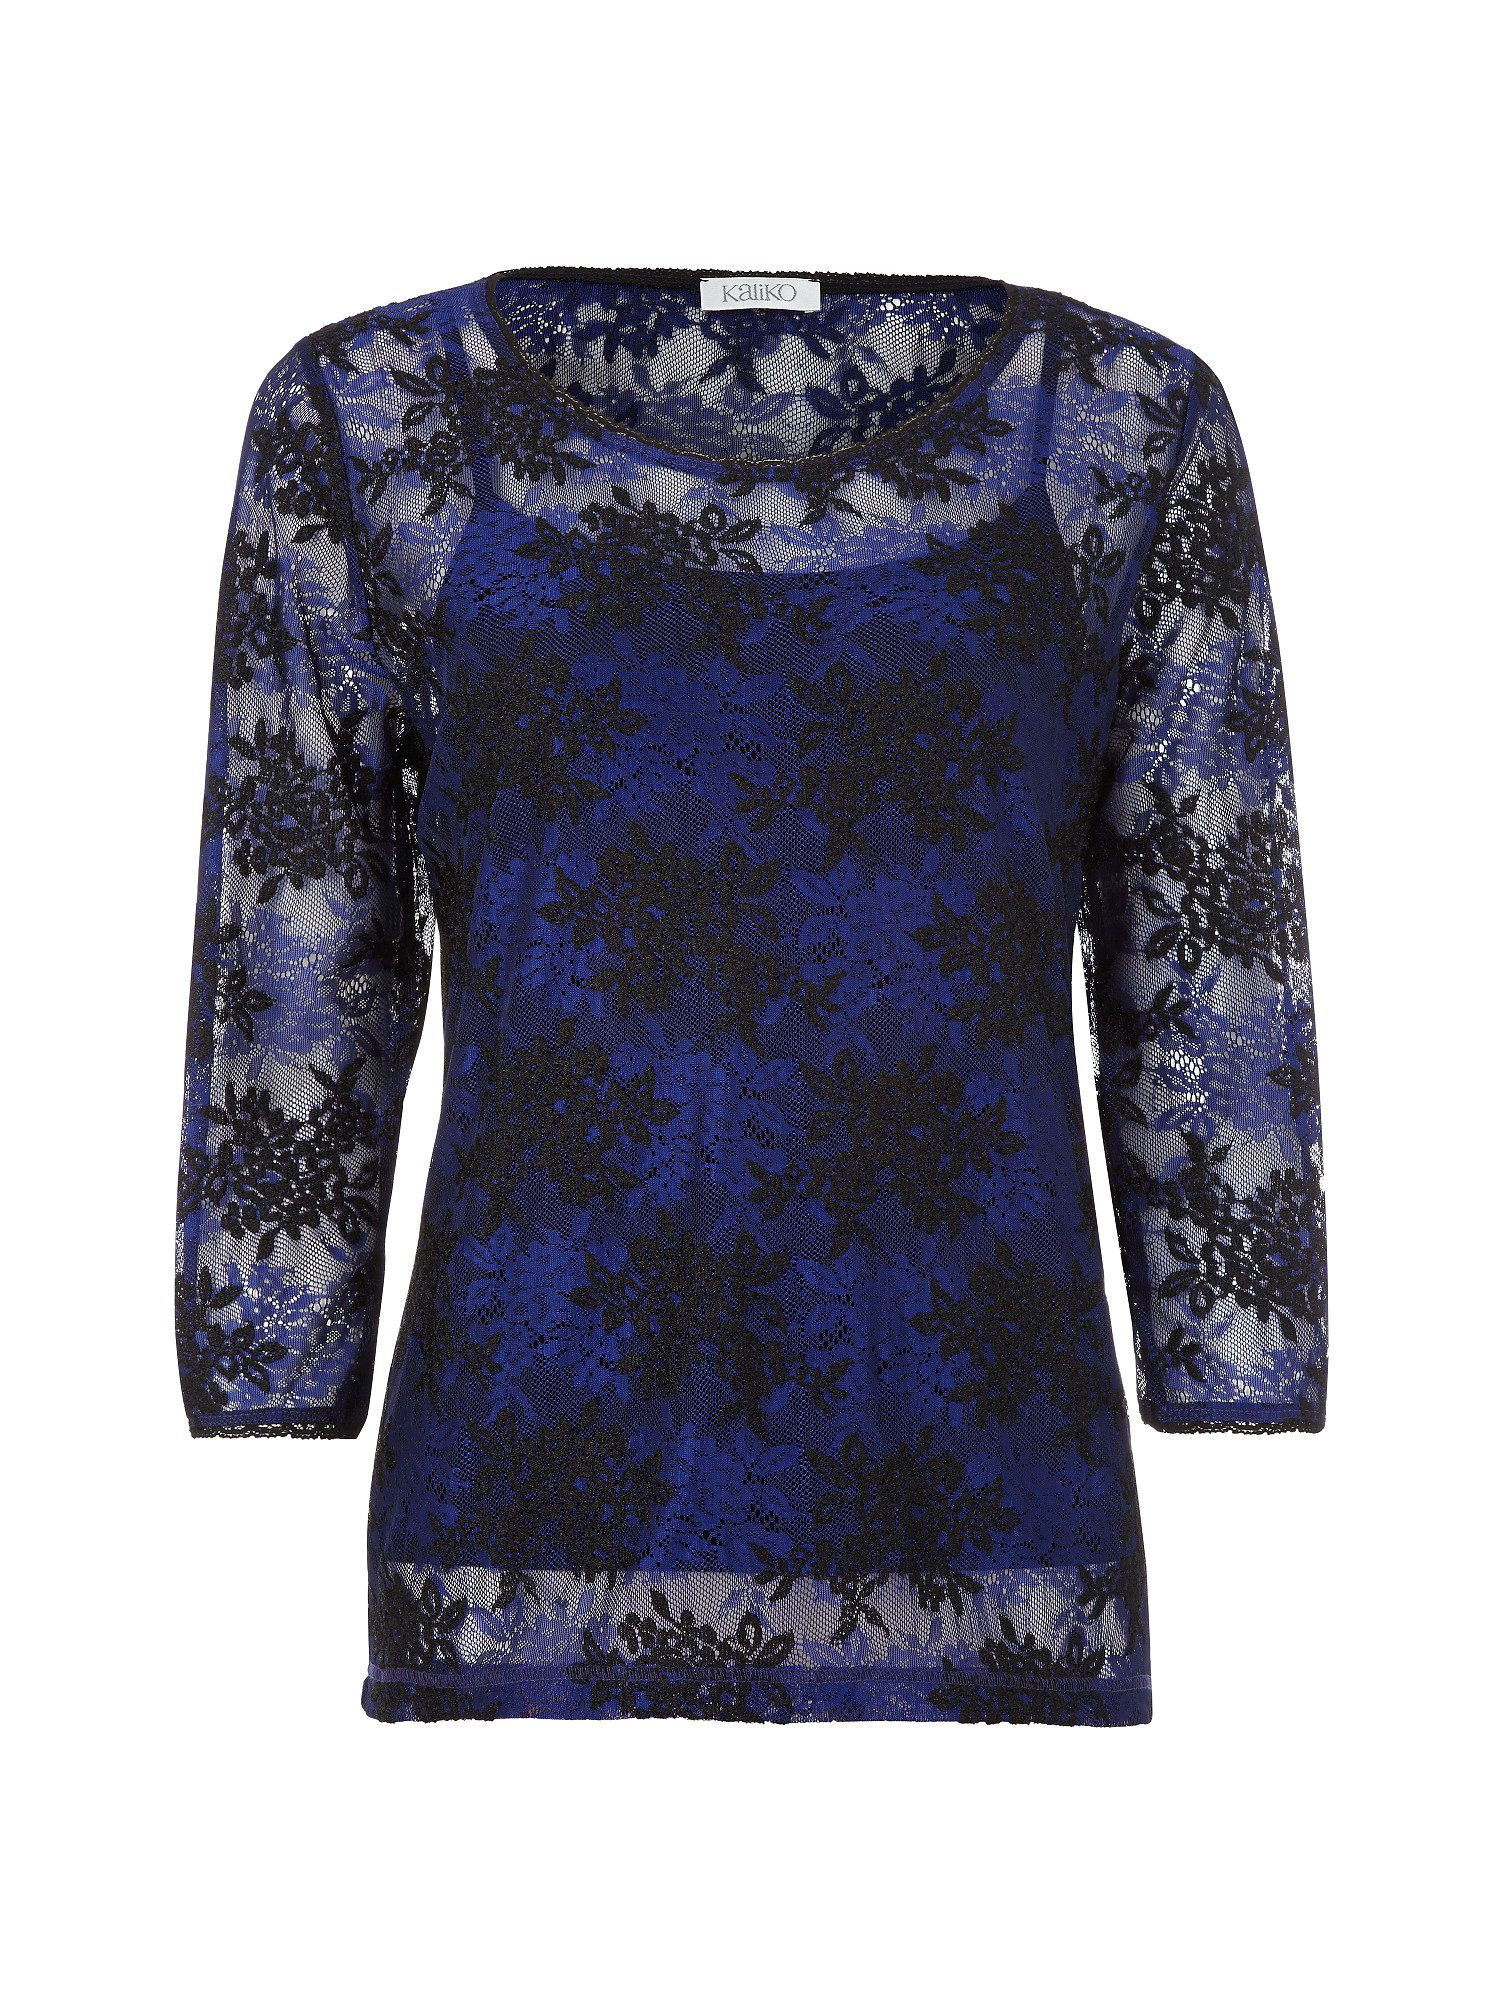 Cobalt & black lace top